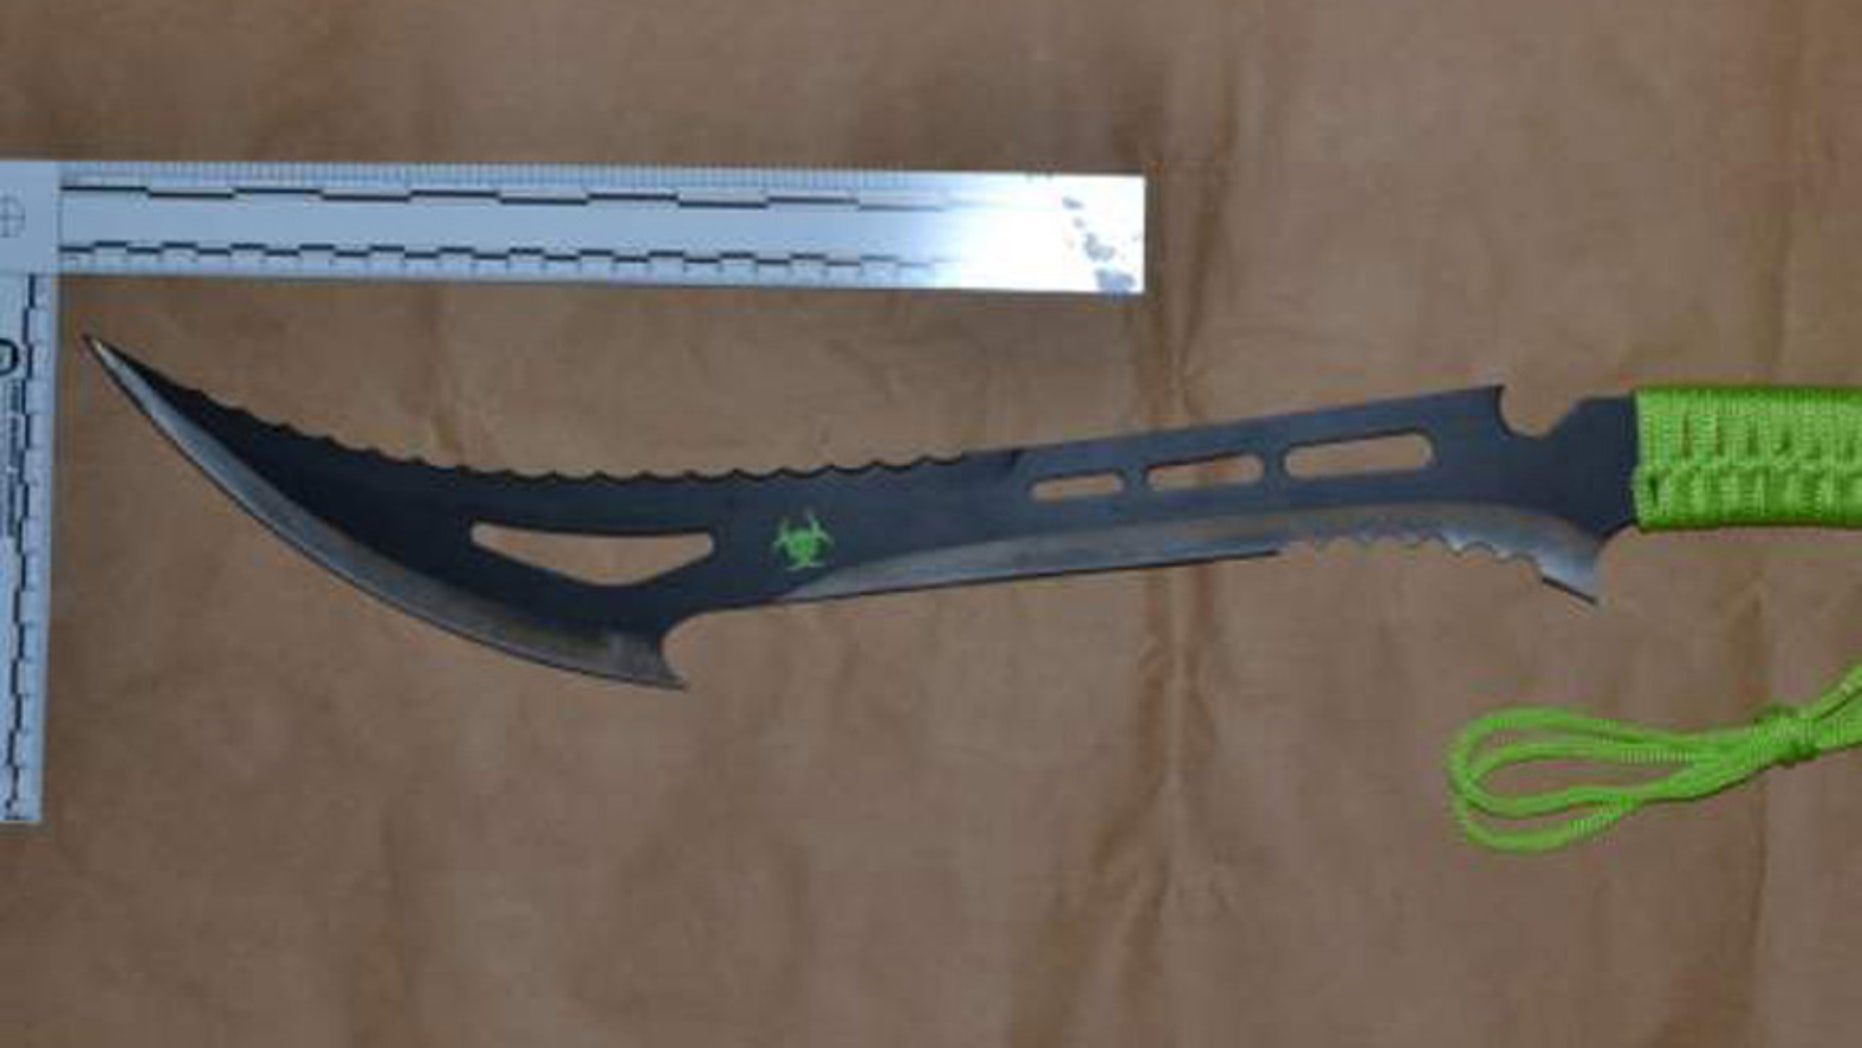 The weapon was not found in the park, but police discovered other Zombie Killer knives.